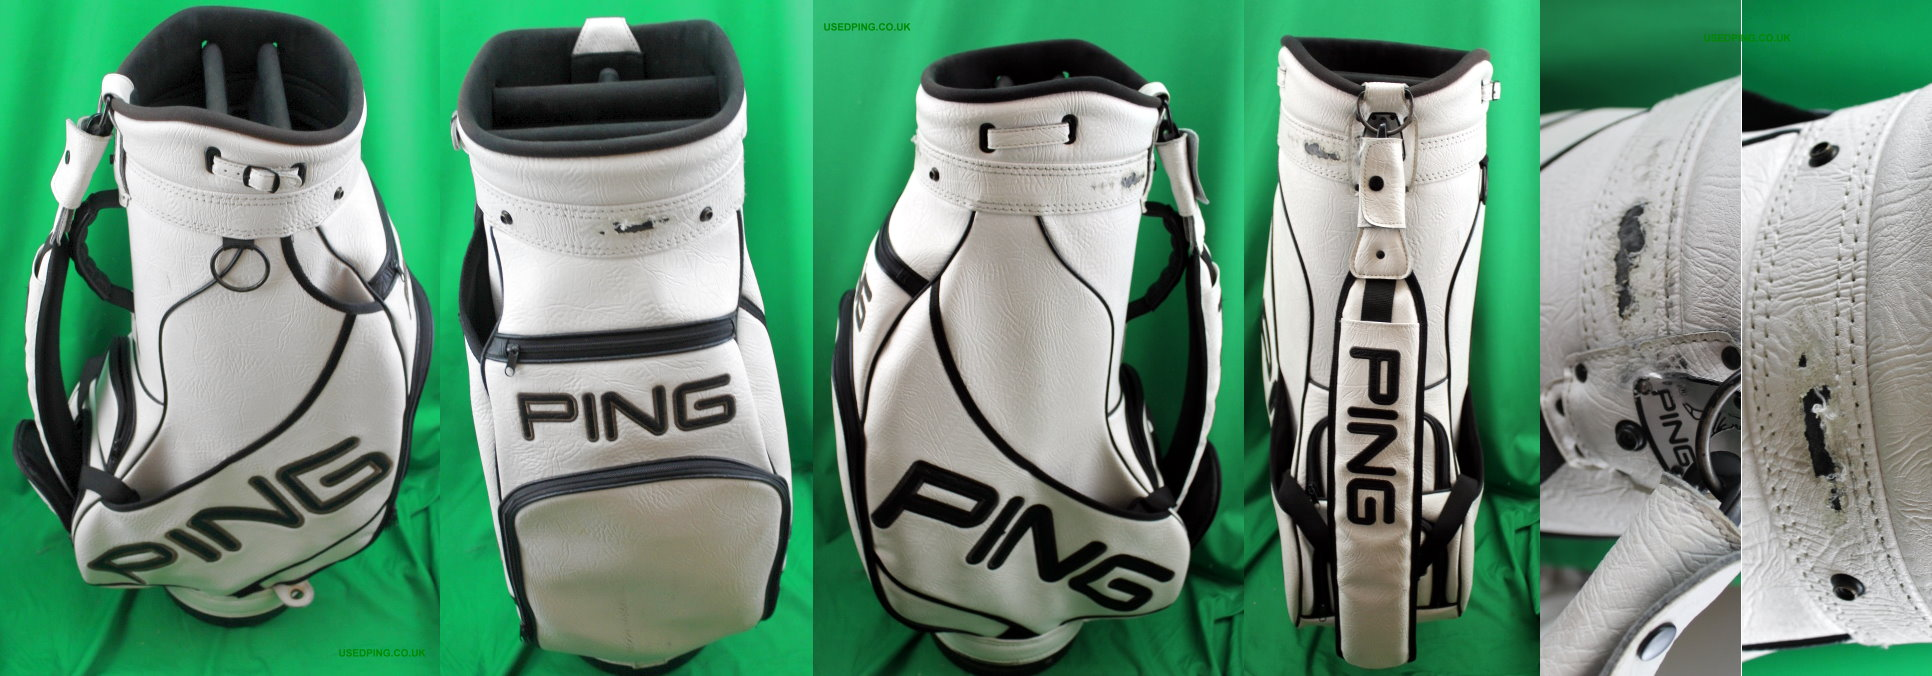 Used Ping Golf Cart Tour And Stand Bags For Sale